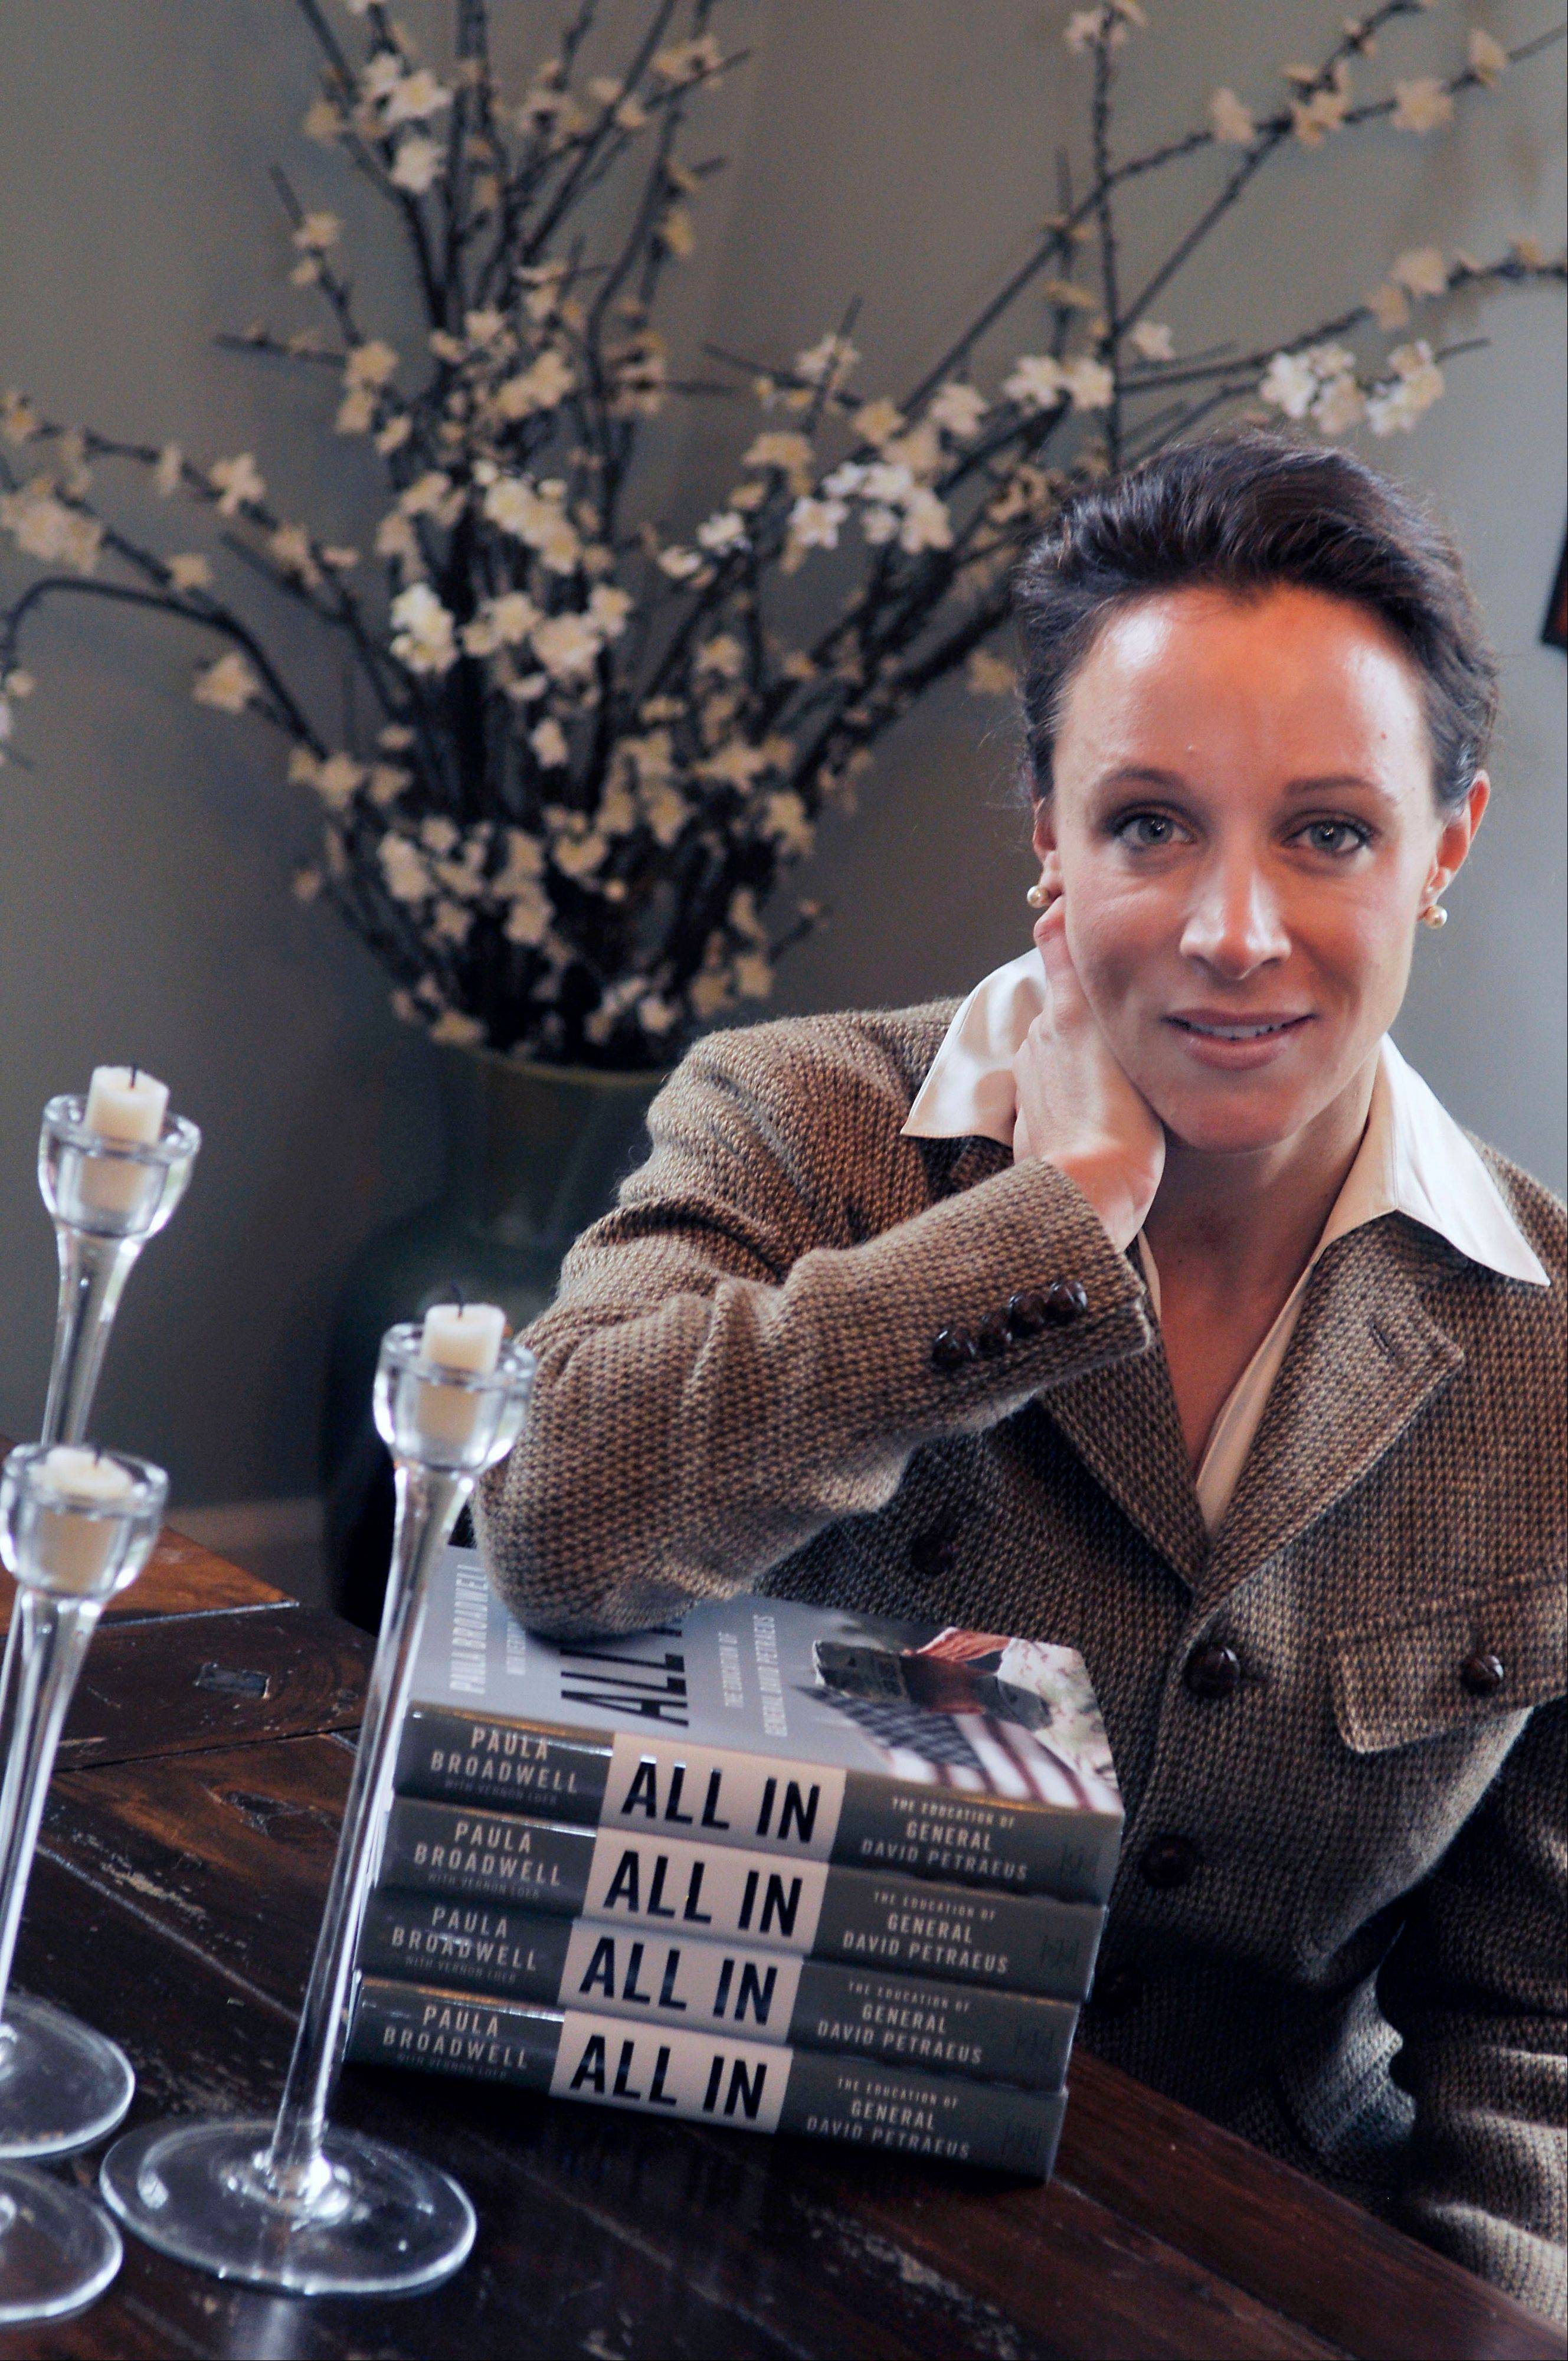 $PHOTOCREDIT_ON$$PHOTOCREDIT_OFF$ Paula Broadwell, author of the David Petraeus biography �All In,� poses for photos in Charlotte, N.C.